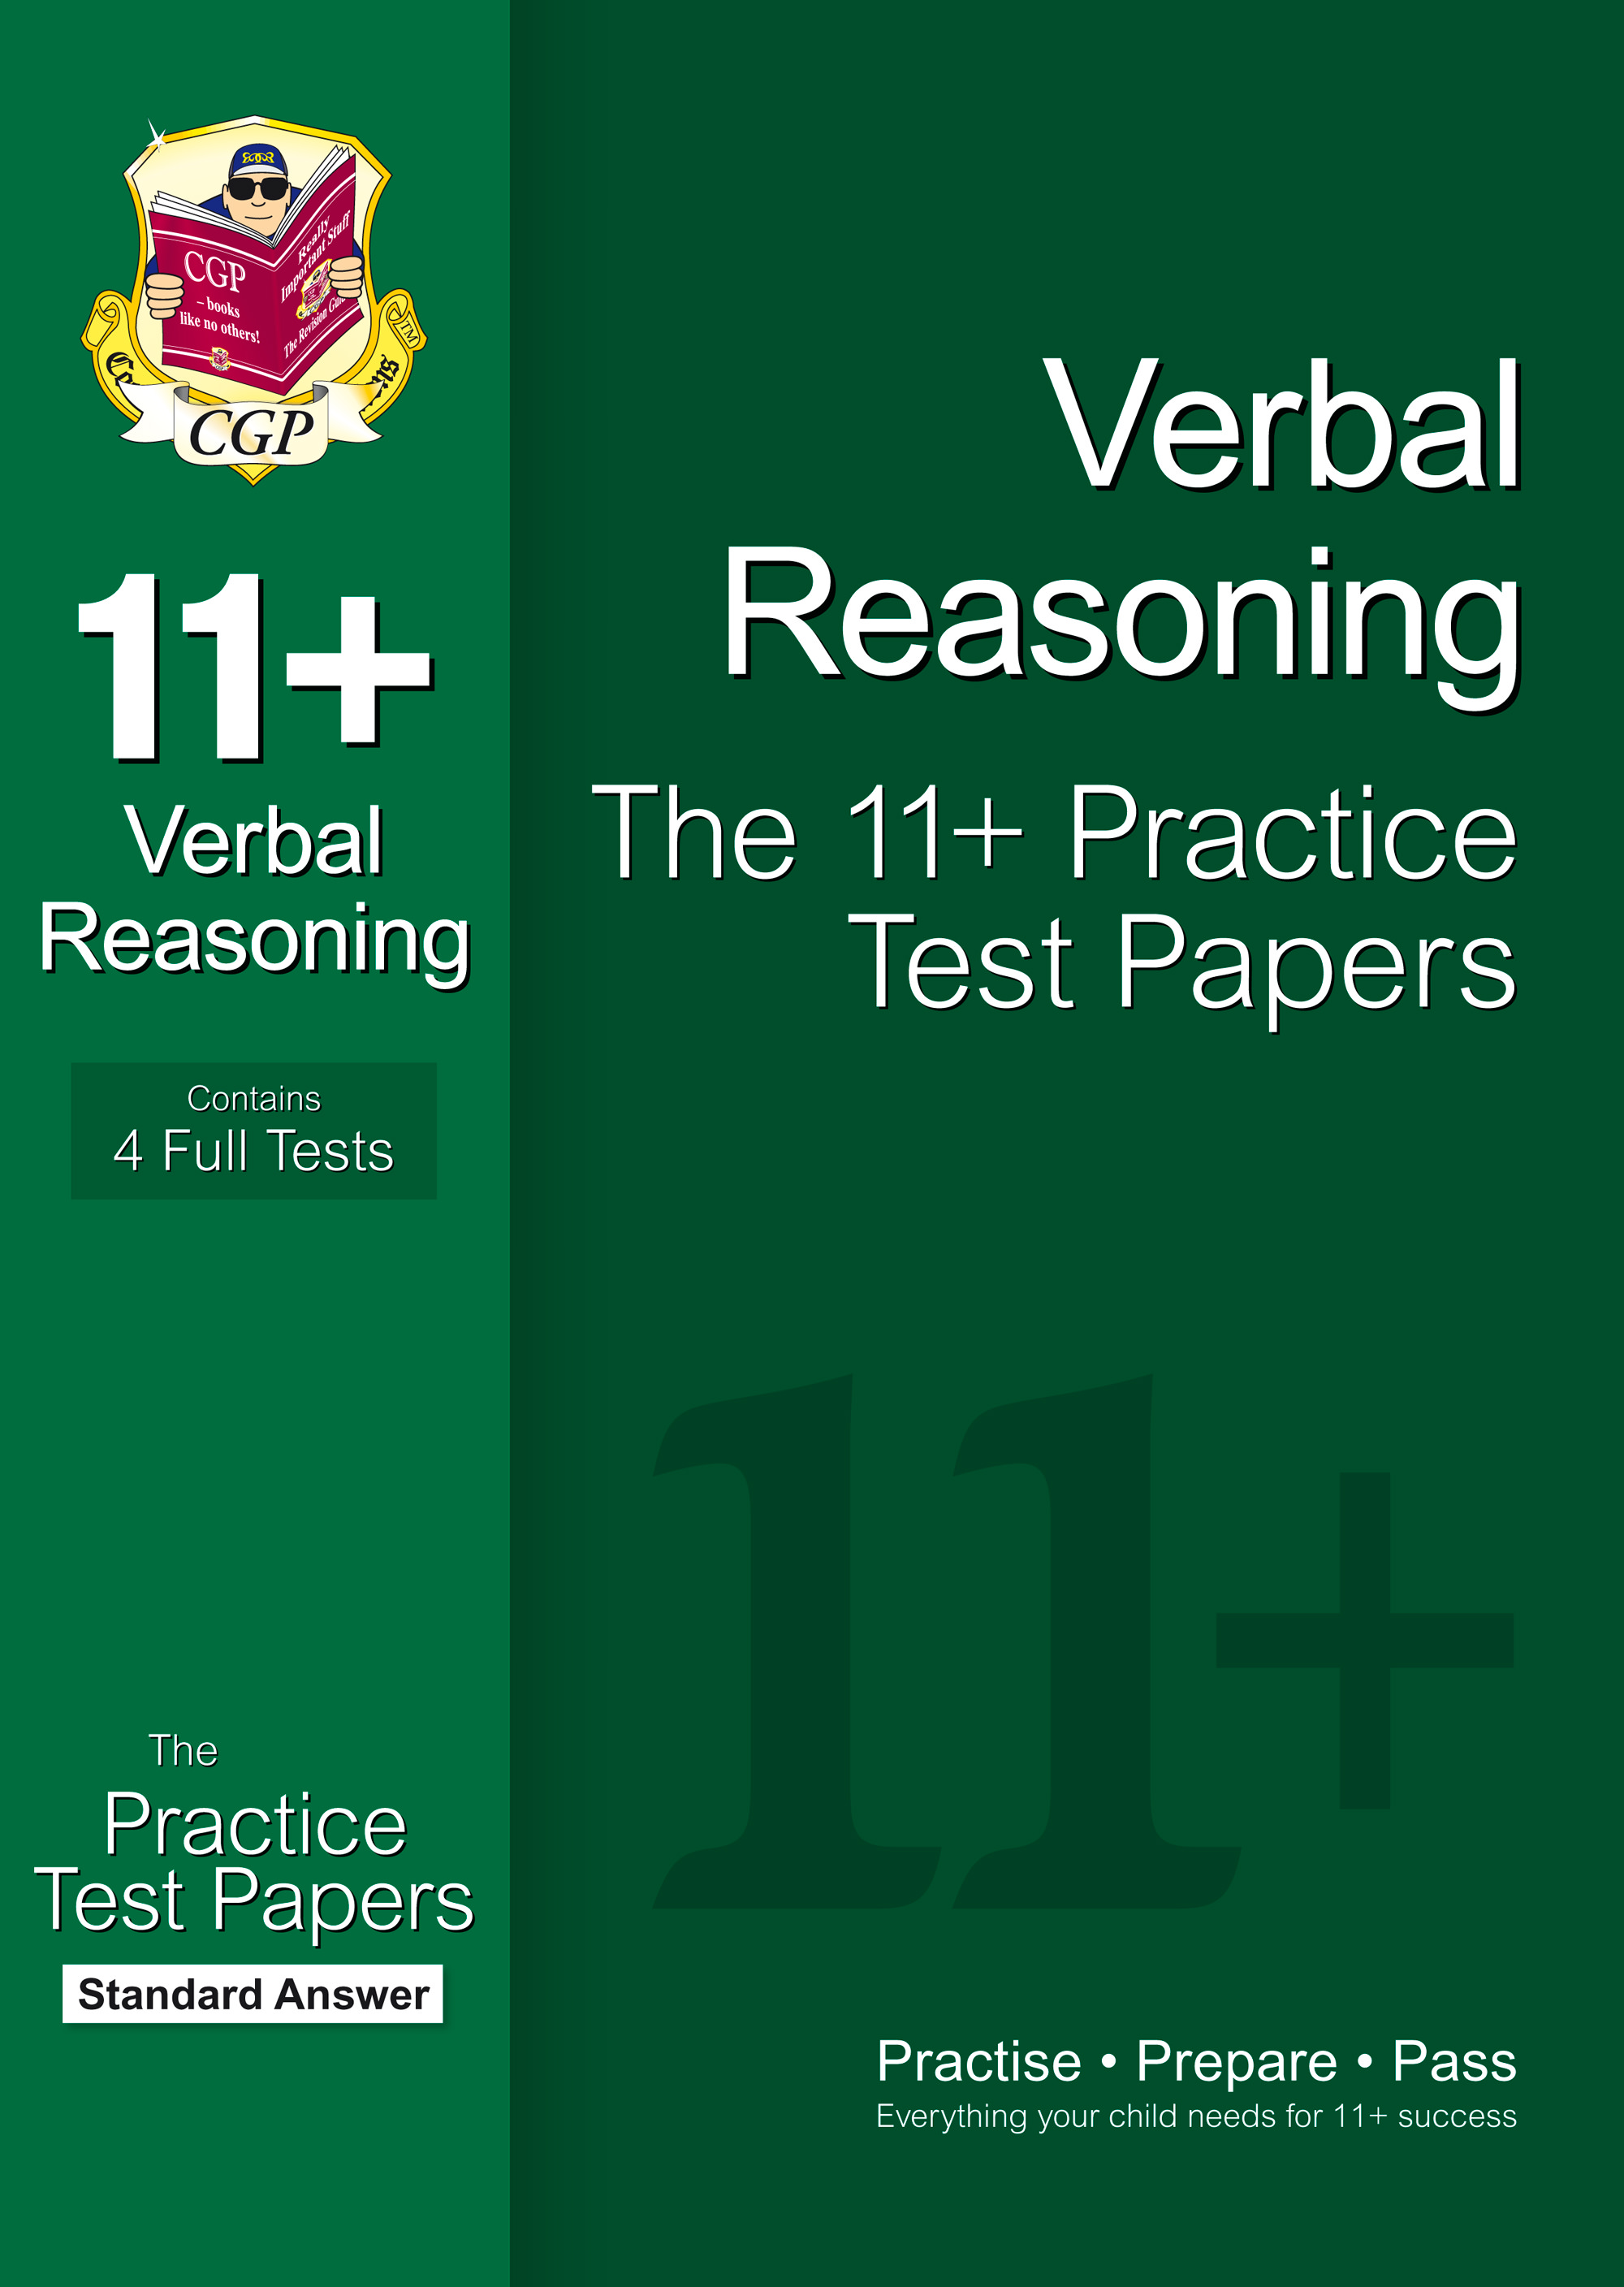 VHPE1 - 11+ Verbal Reasoning Practice Papers: Standard Answers (for GL & Other Test Providers)